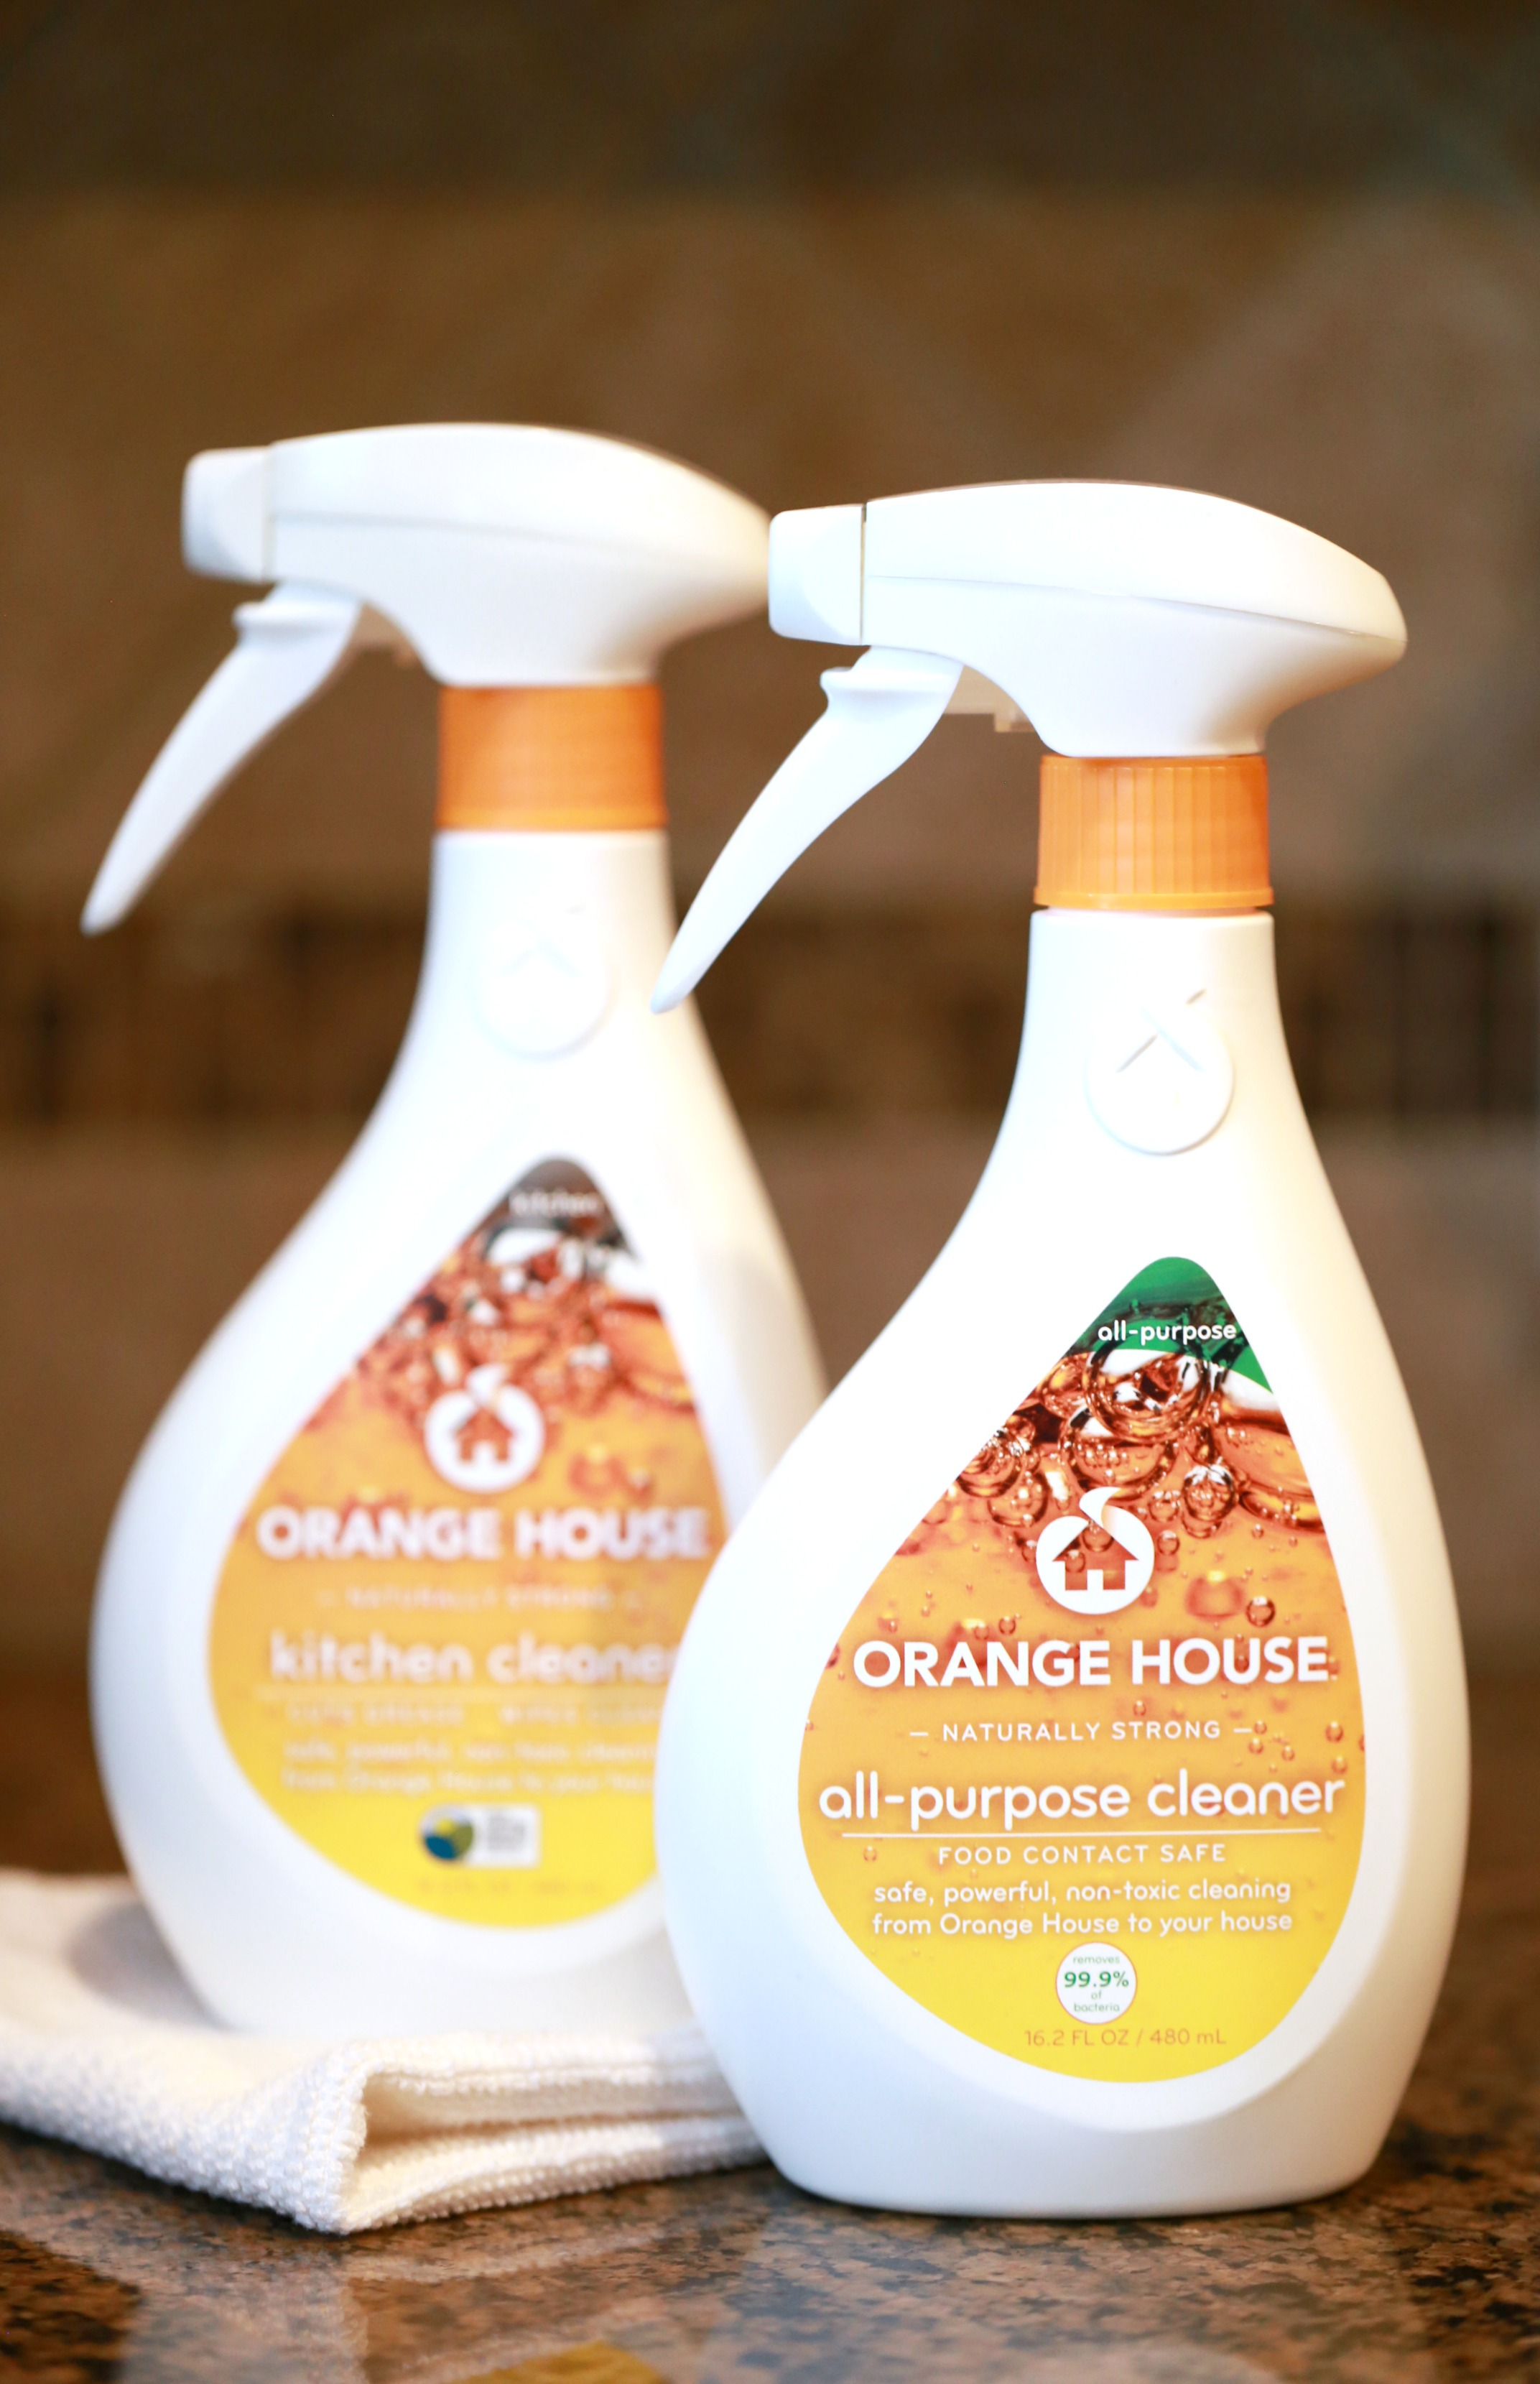 When keeping a clean home is a top priority, naturally strong cleaning products matter. Take the Orange House Challenge and see for yourself.